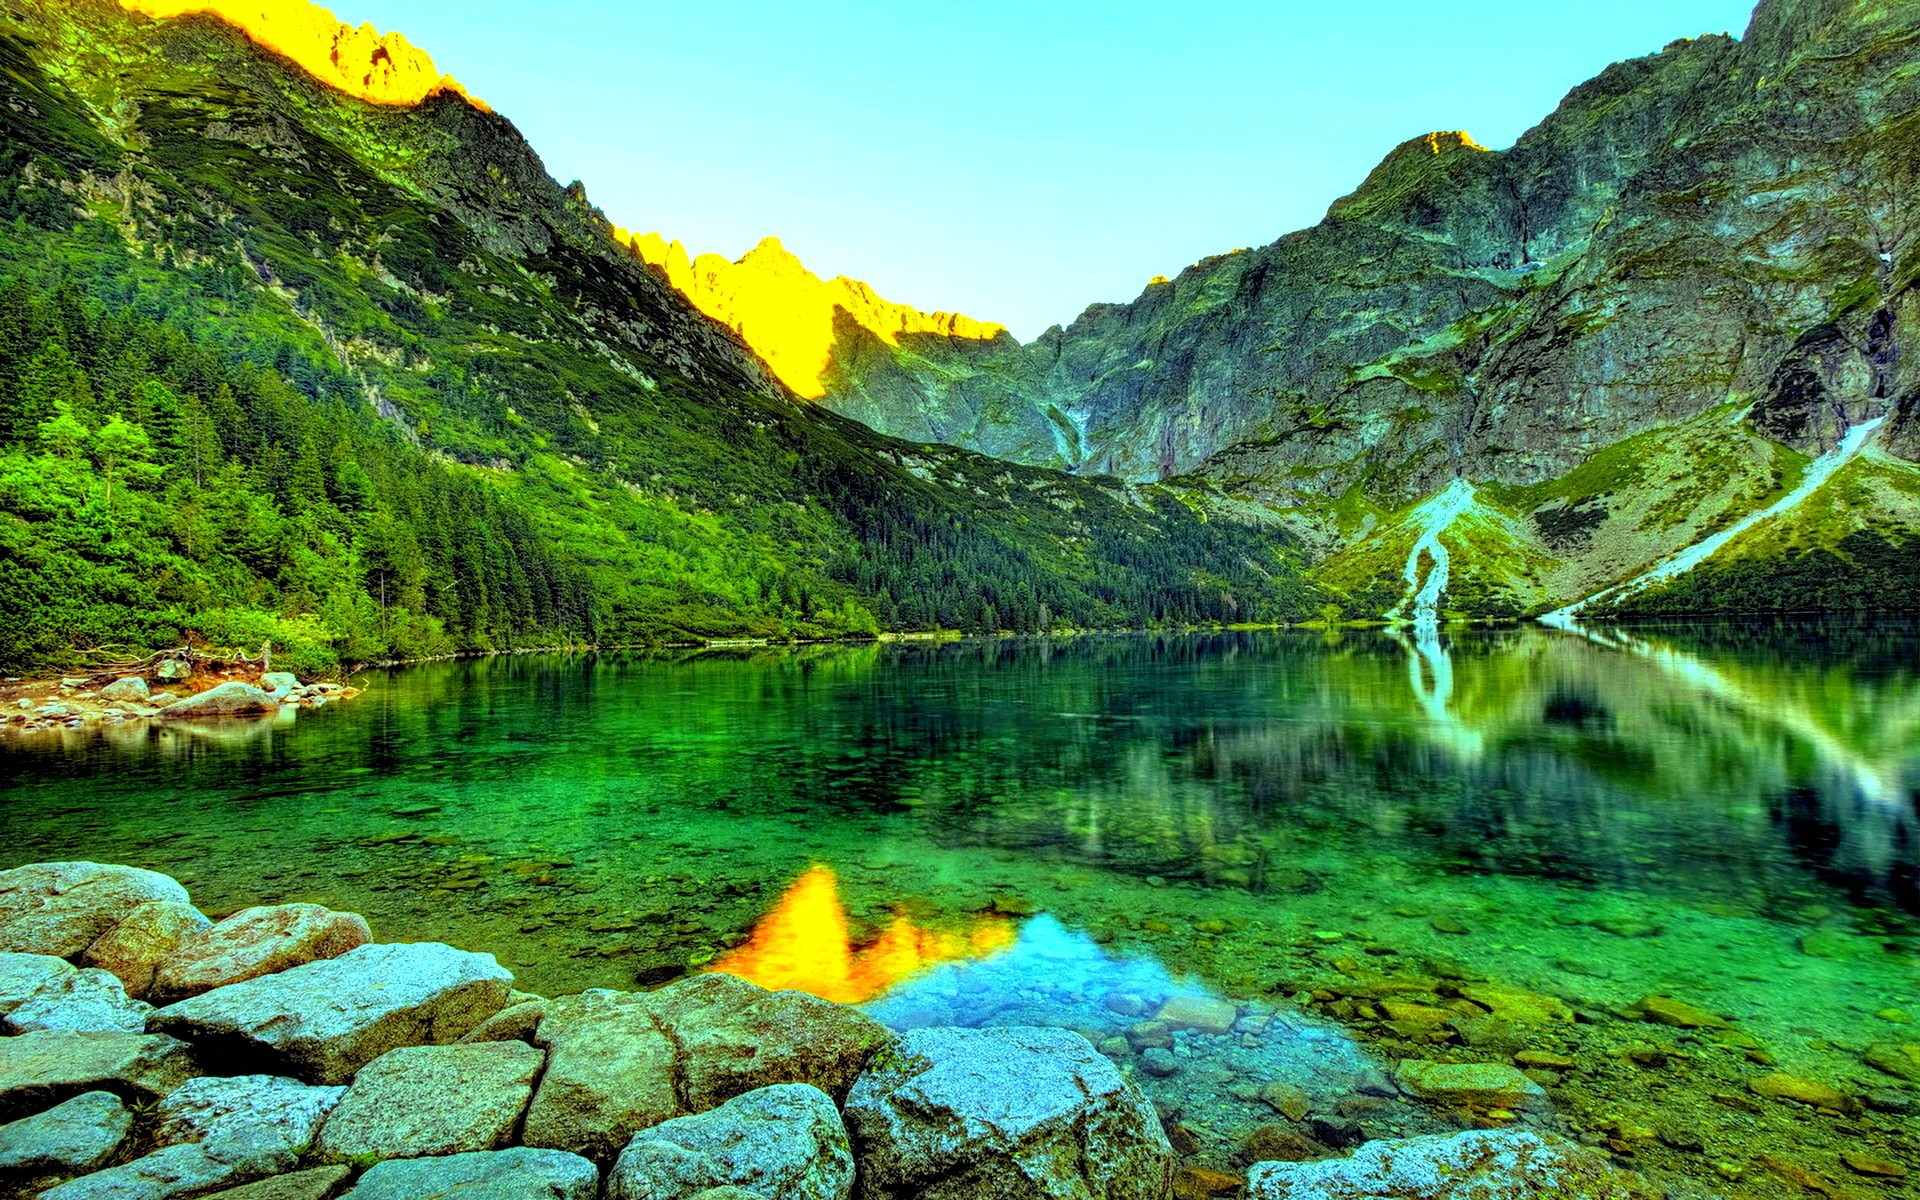 Clear water in the green mountain lake wallpapers and images ...